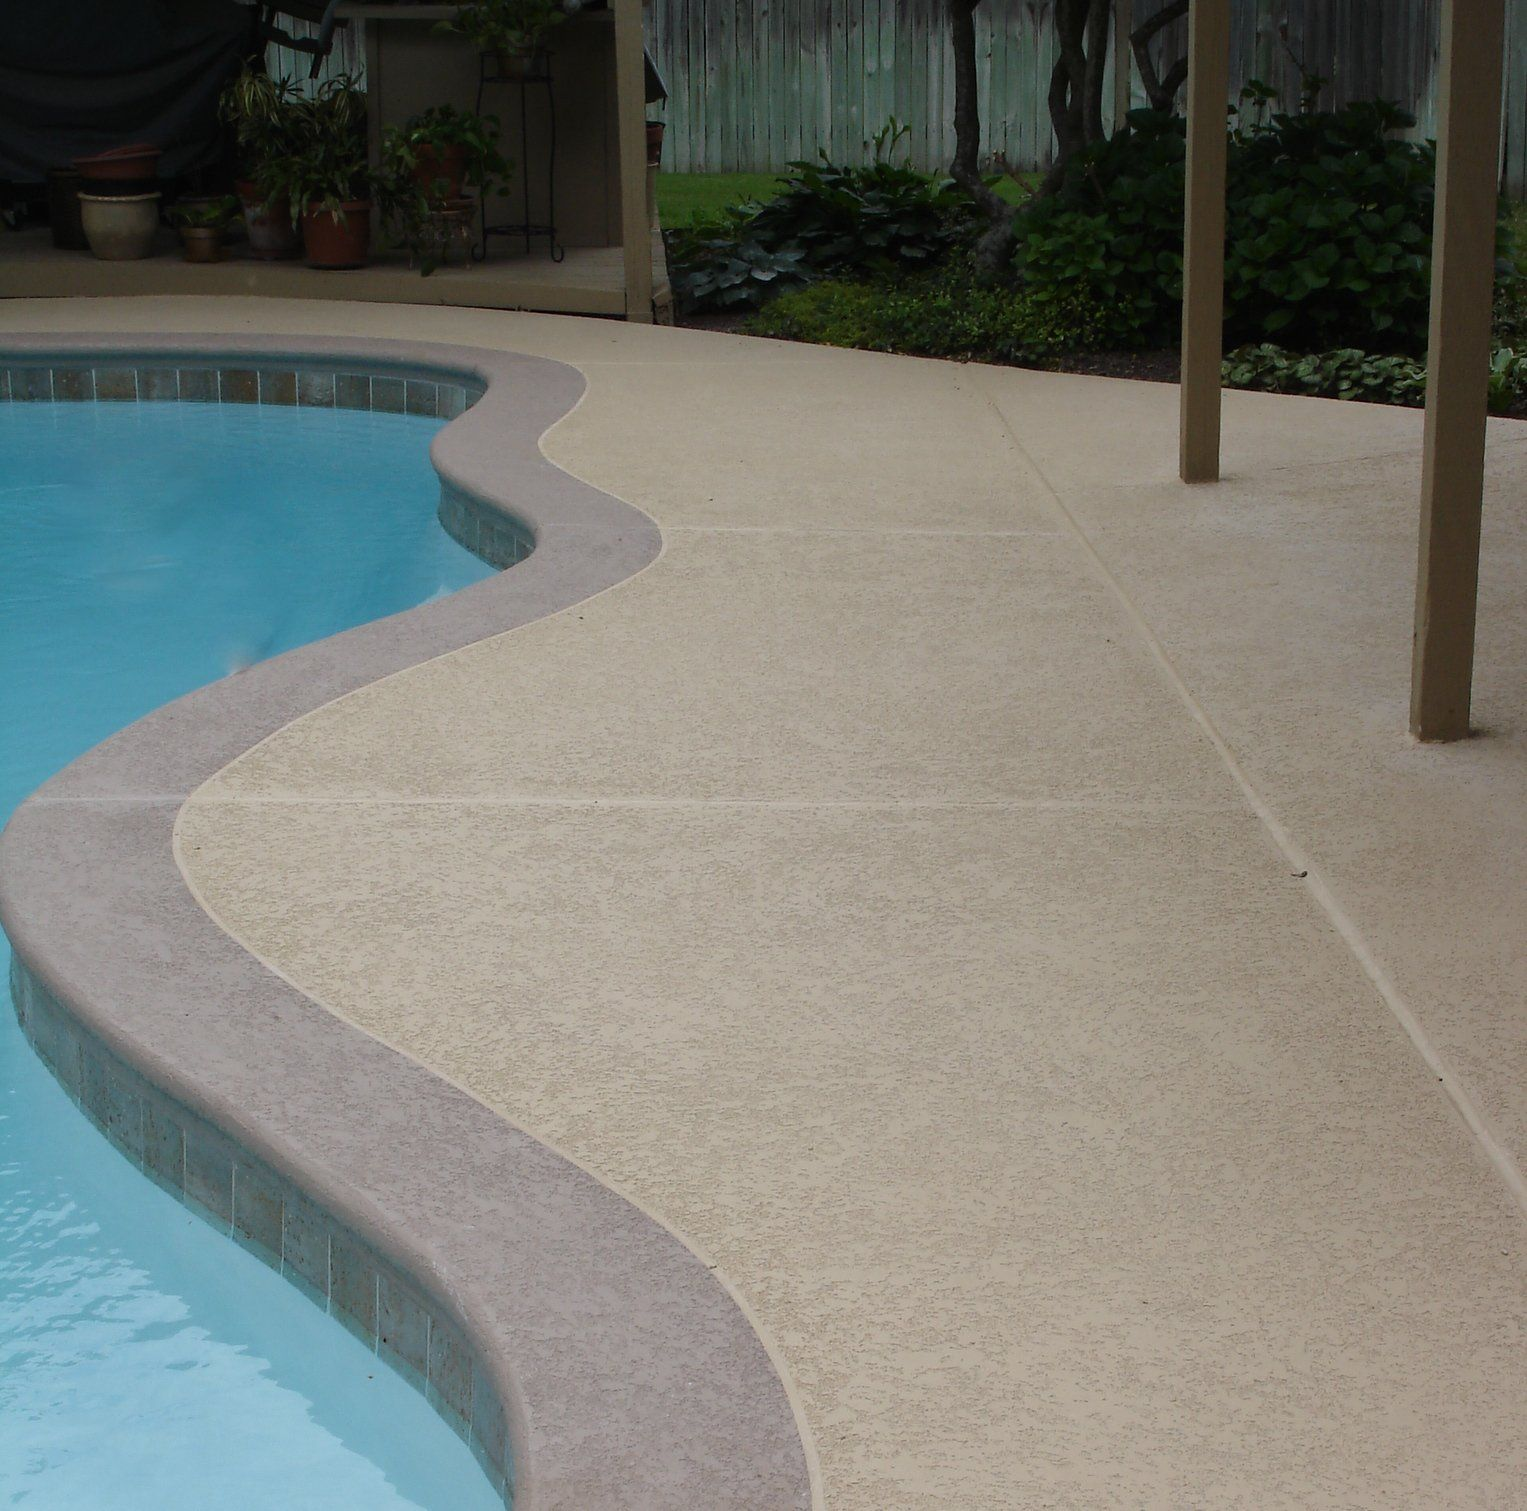 Outdoor Concrete Non Slippery Pool Area Decorative Concrete Overlays In Tulsa Beauty Crete Supplybeauty